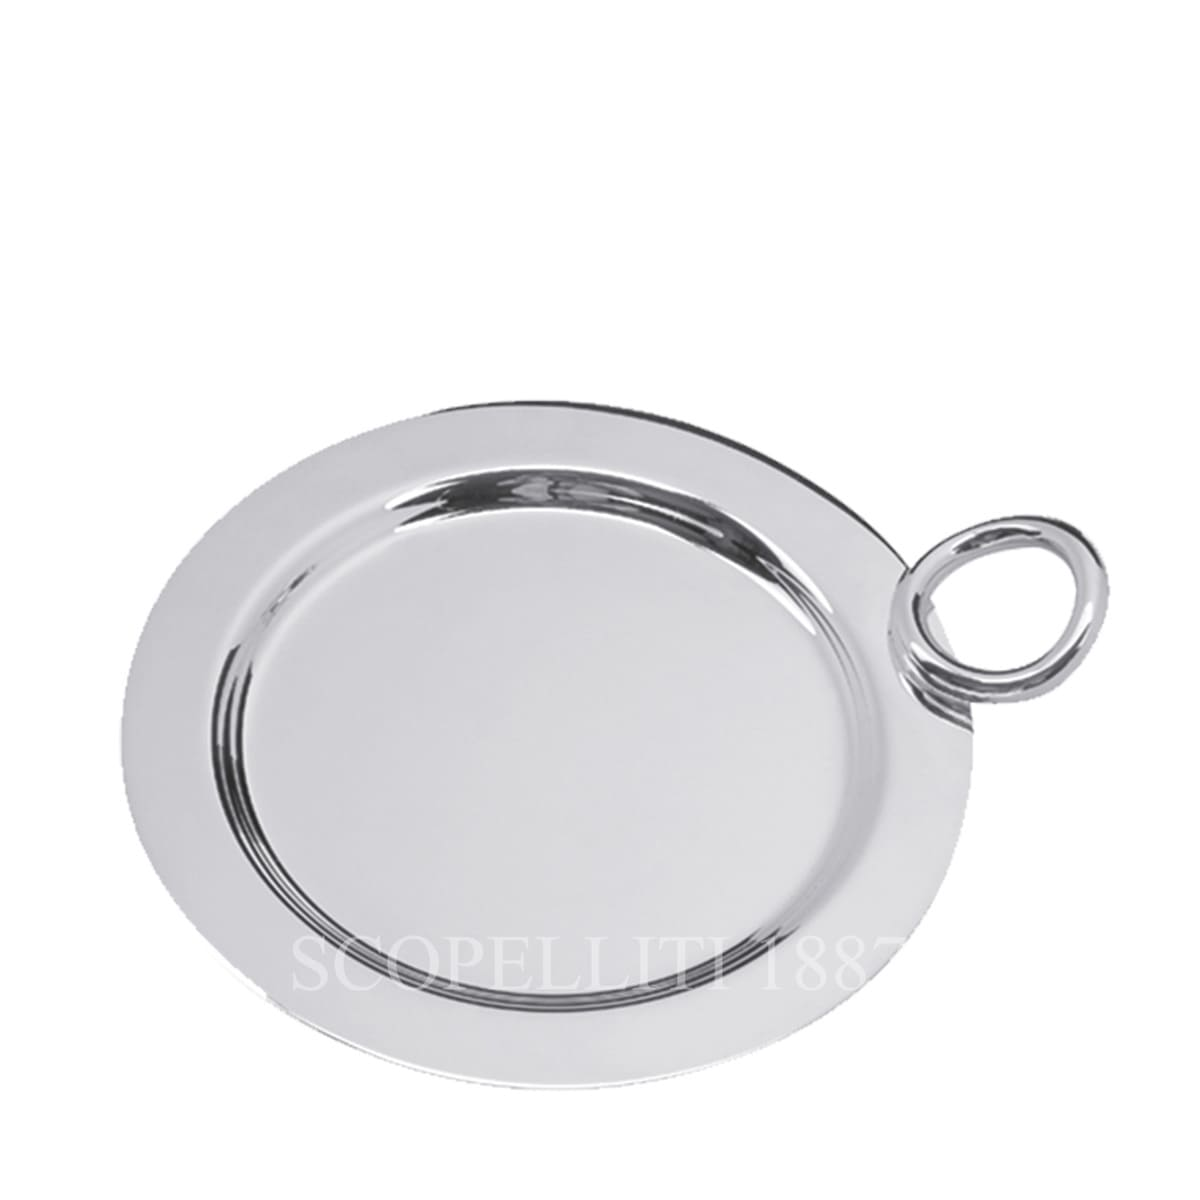 christofle silver plated vertigo bottle coaster